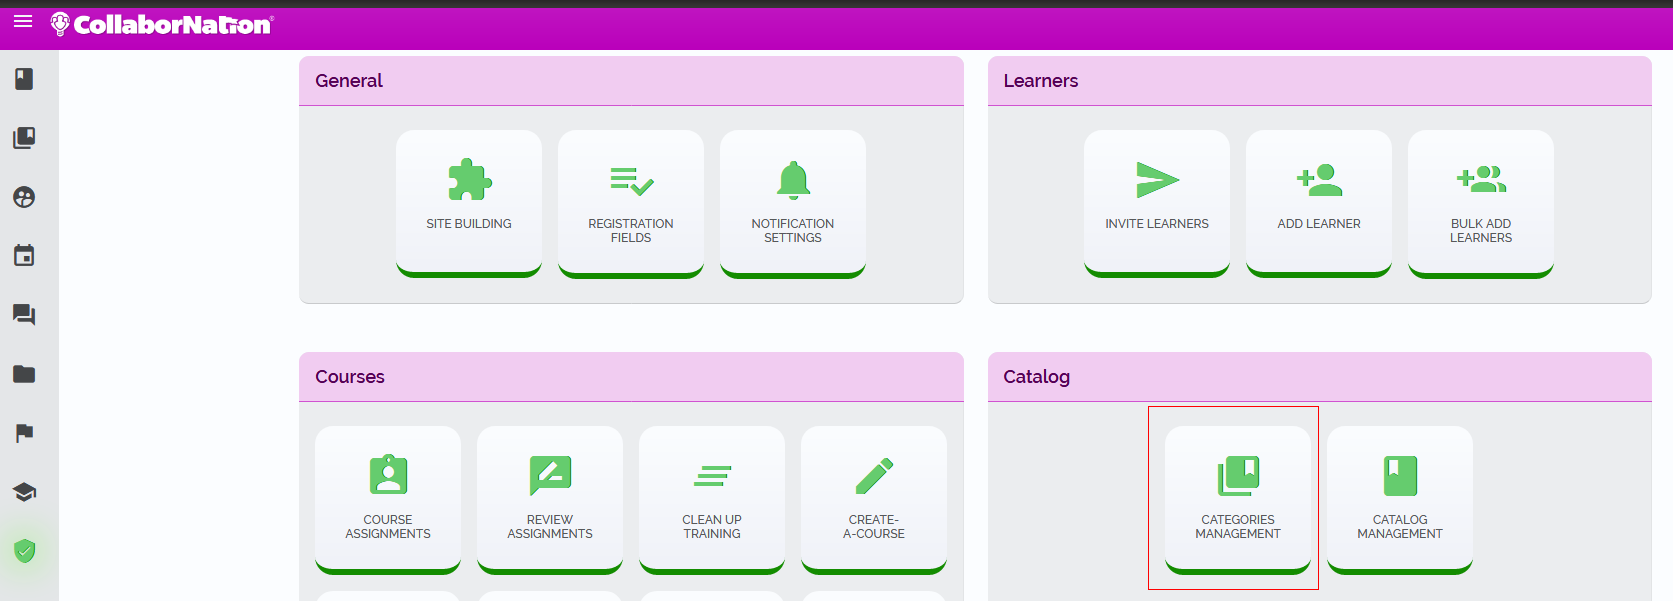 Access the Categories Management page from the Admin Tools section.